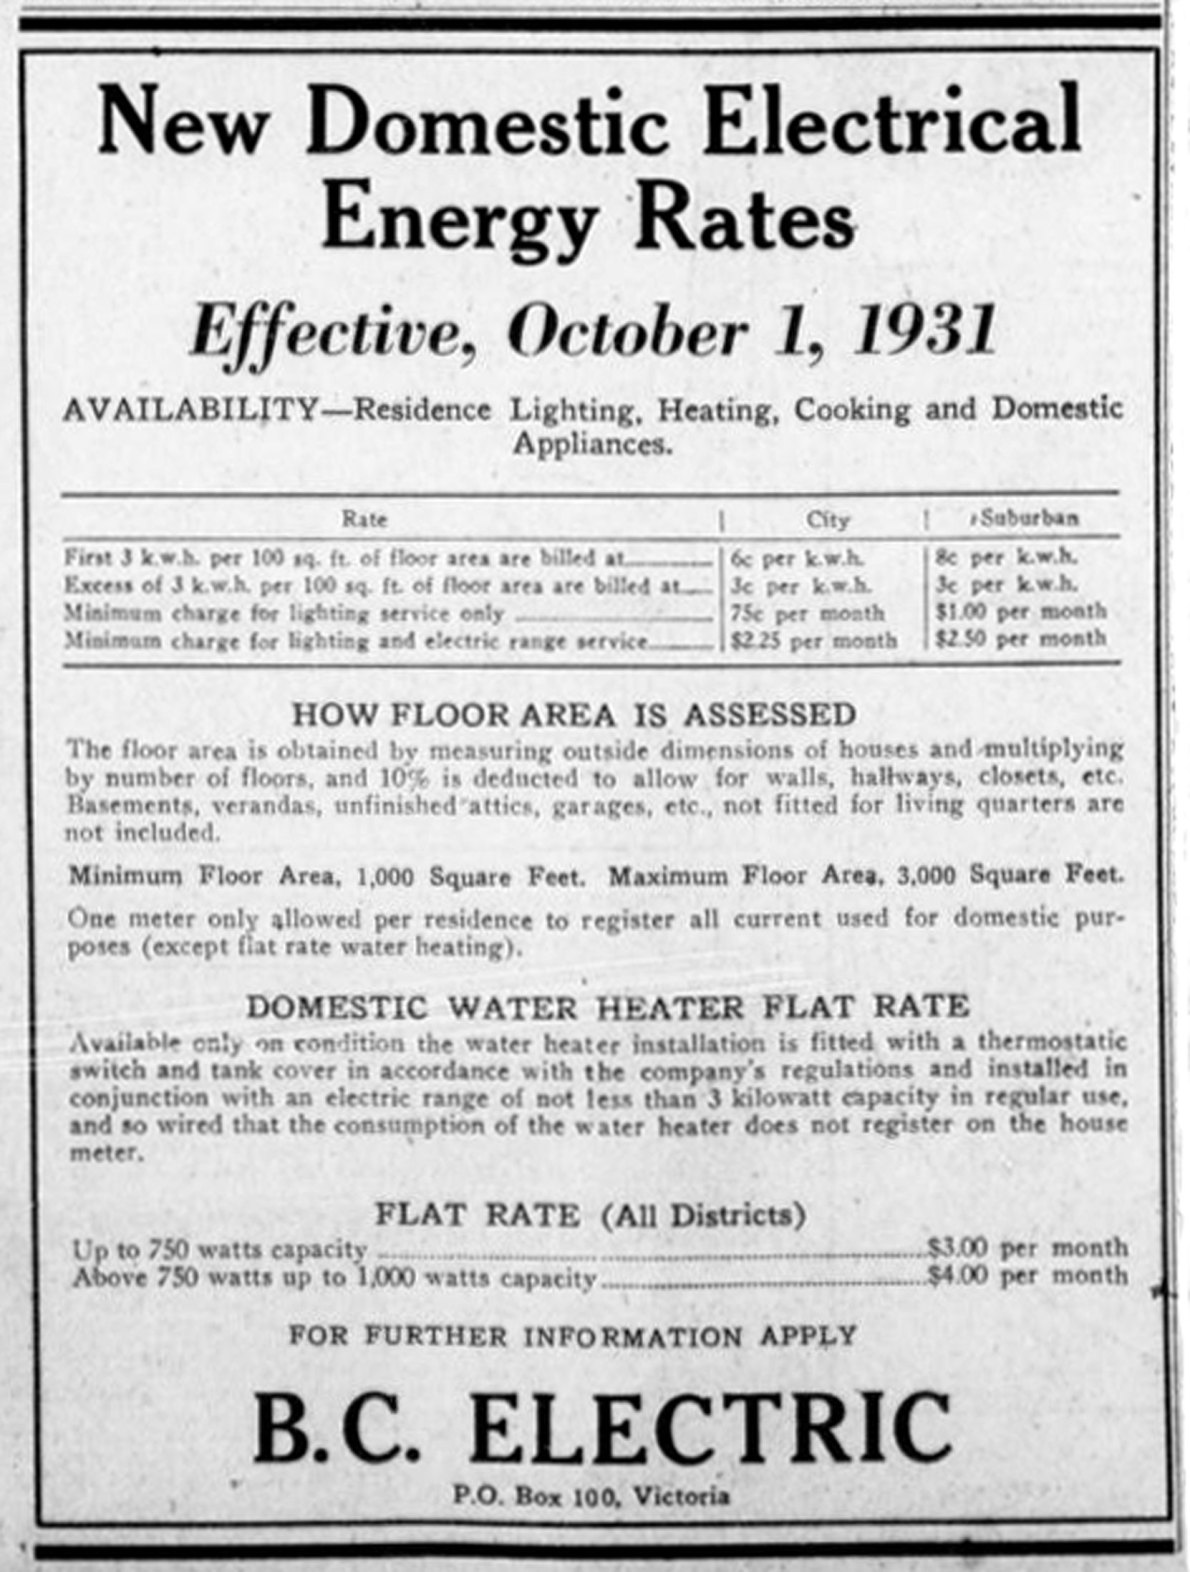 1931 advertisement for B.C. Electric showing household electricity rates (Victoria Online Sightseeing Tours collection)